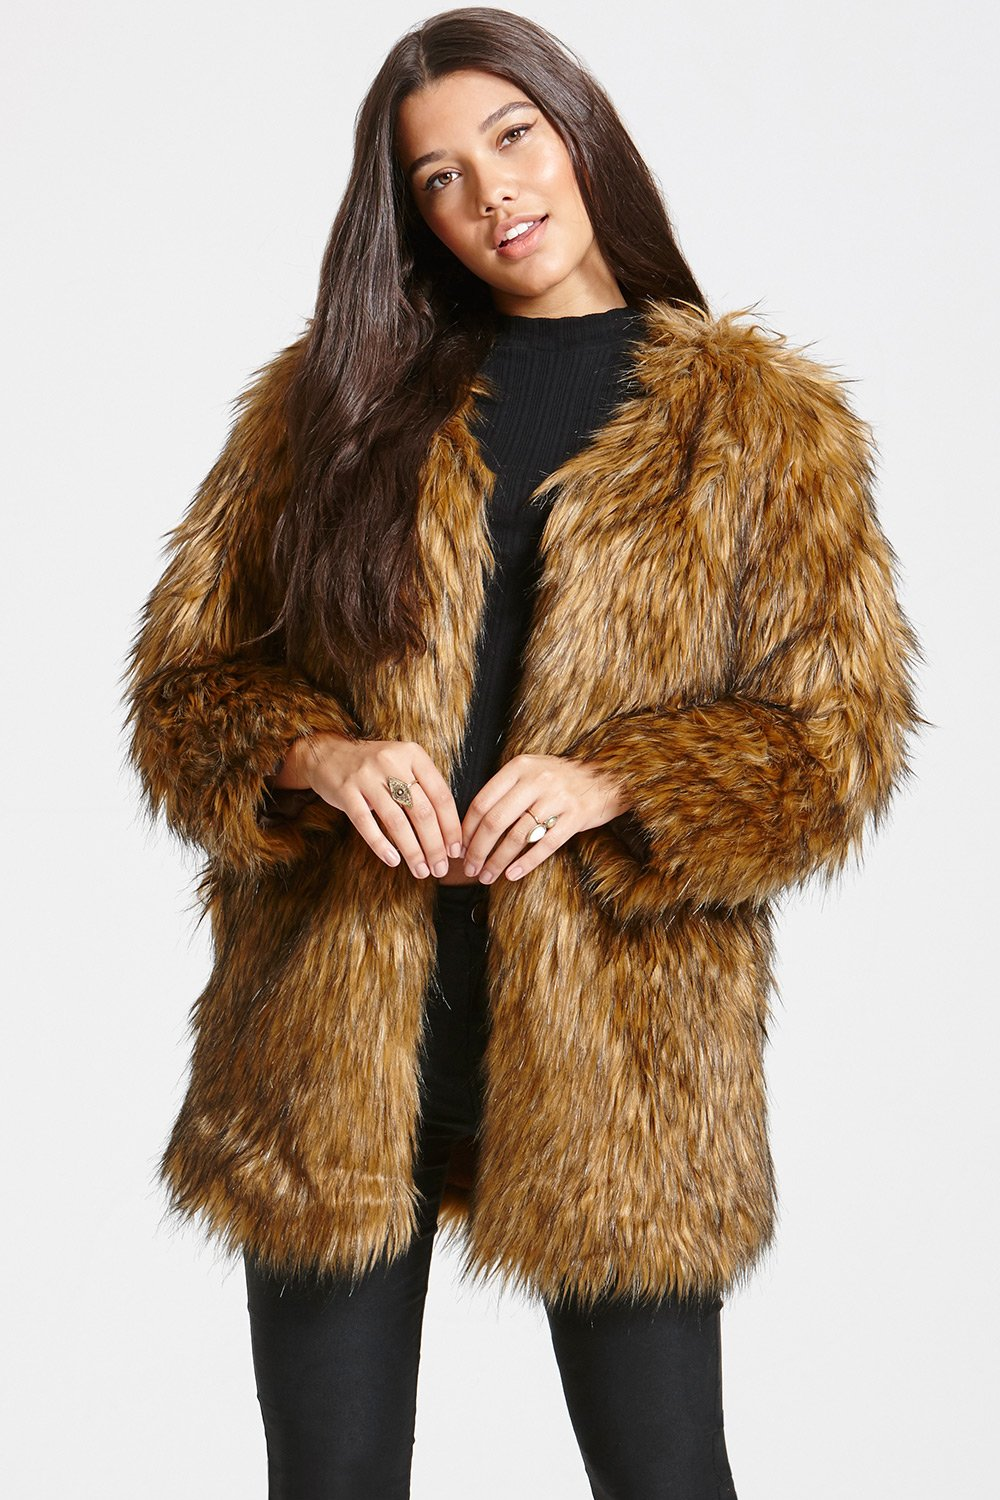 ... little mistress brown faux fur jacket ... NCHGENM